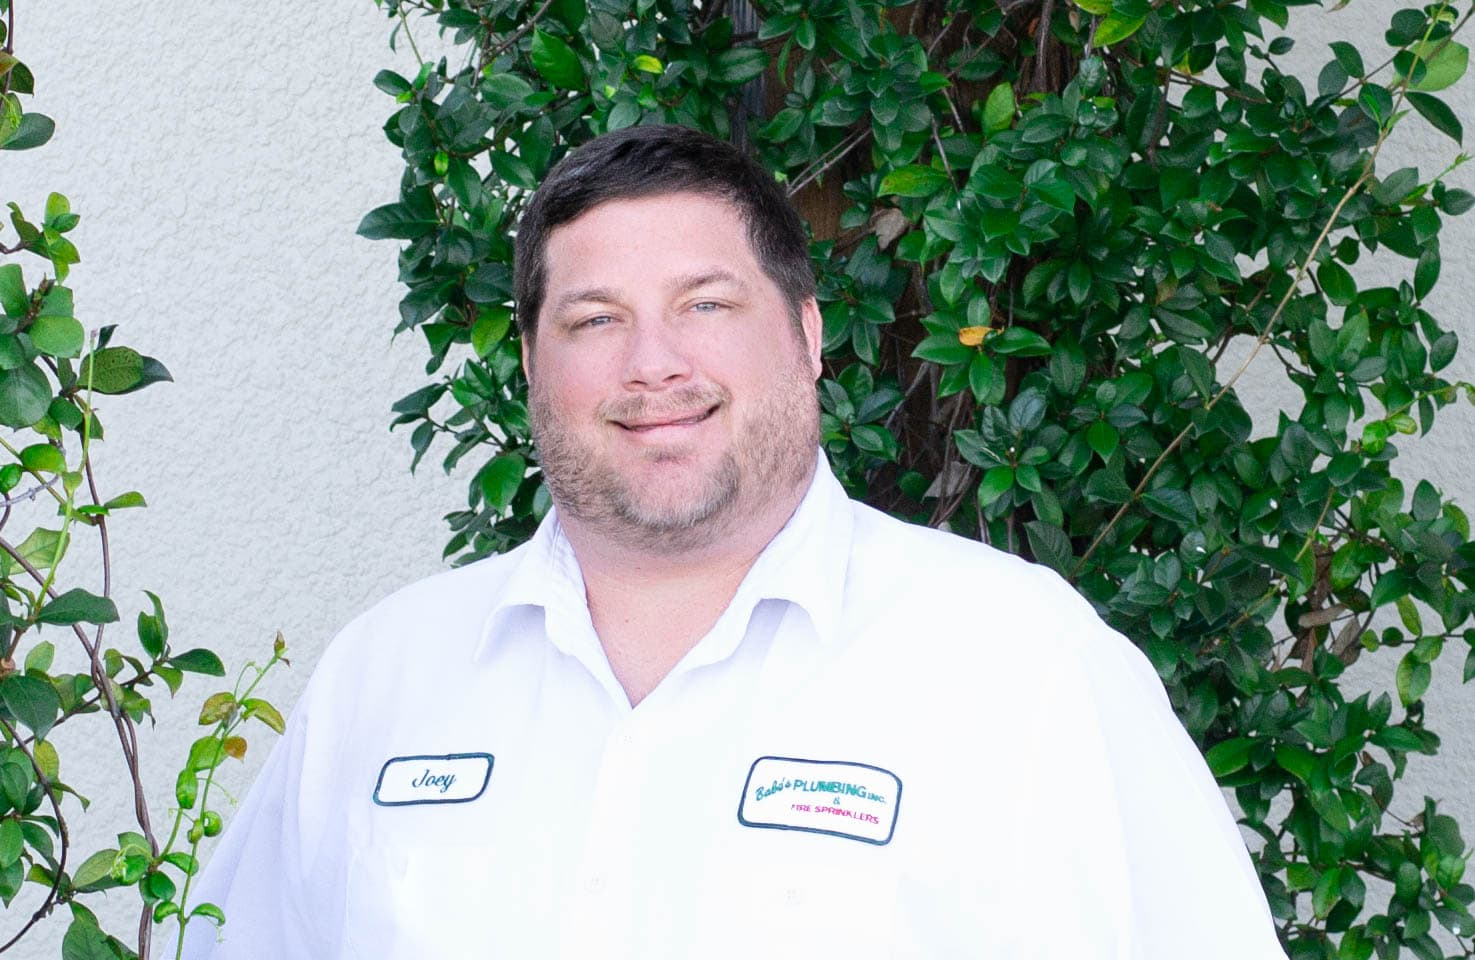 Joe Dalton, Jr. - Vice President of Babe's Plumbing, Inc.